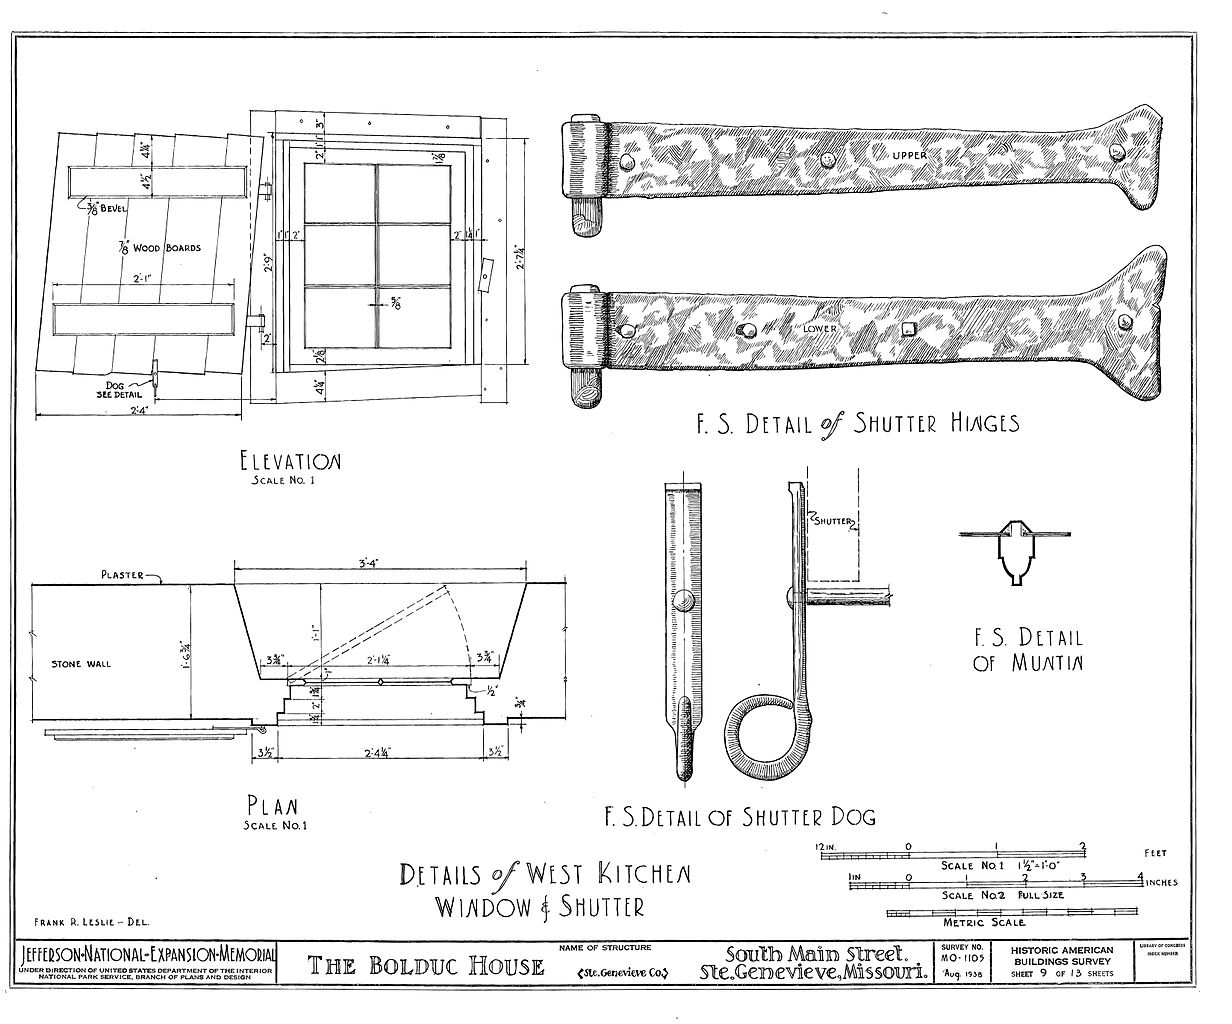 Shuttering Details For Wall : File drawing of window and shutter details in the bolduc